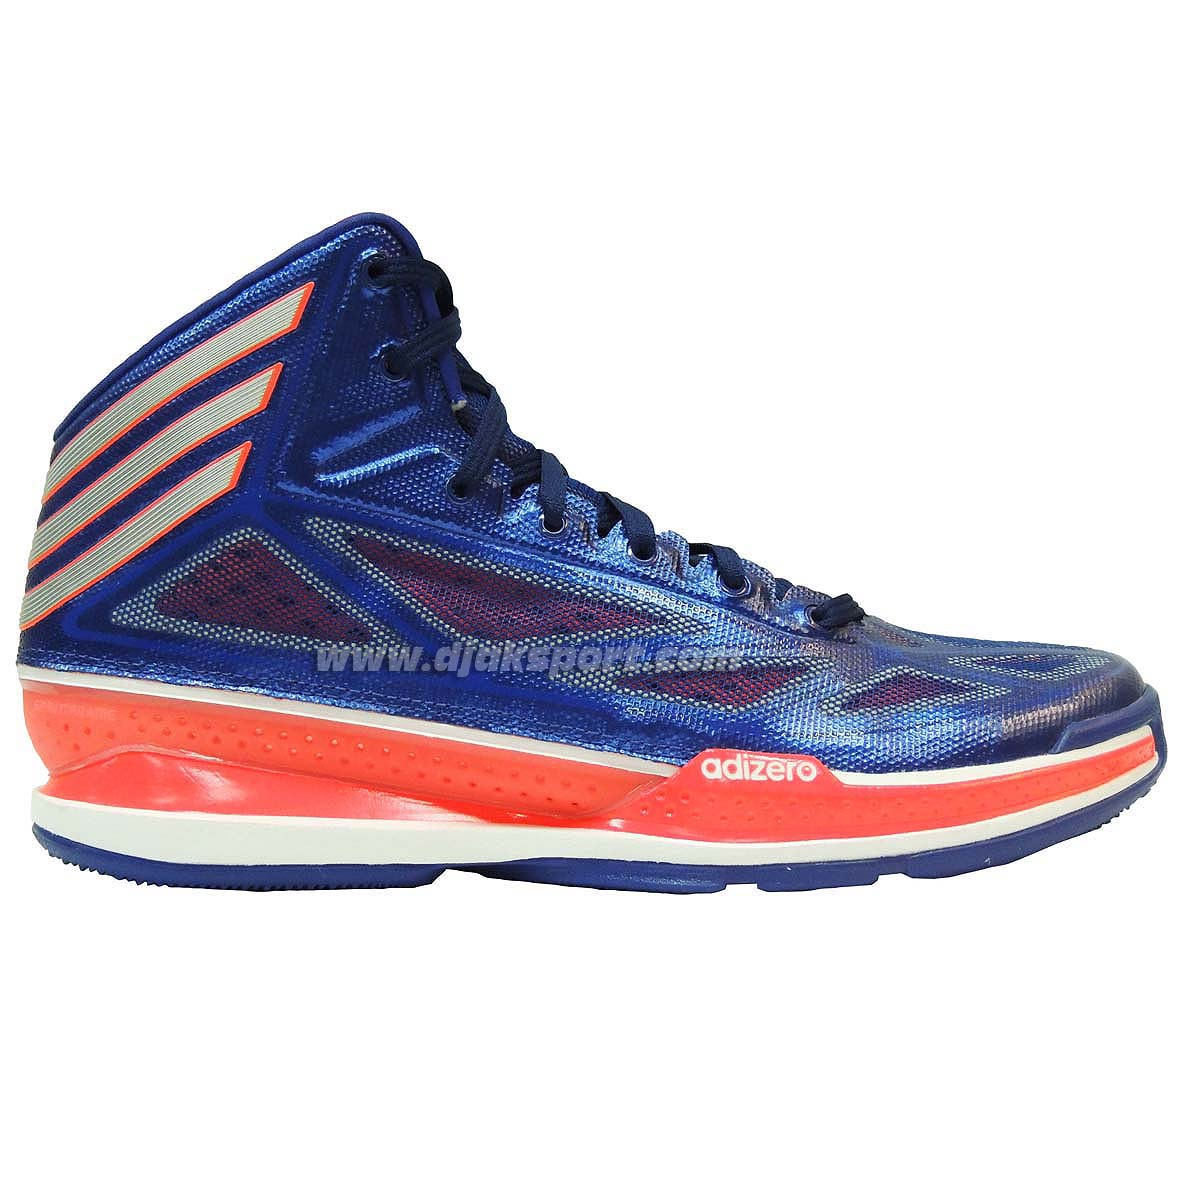 - ADIZERO CRAZY LIGHT 3 Q32582